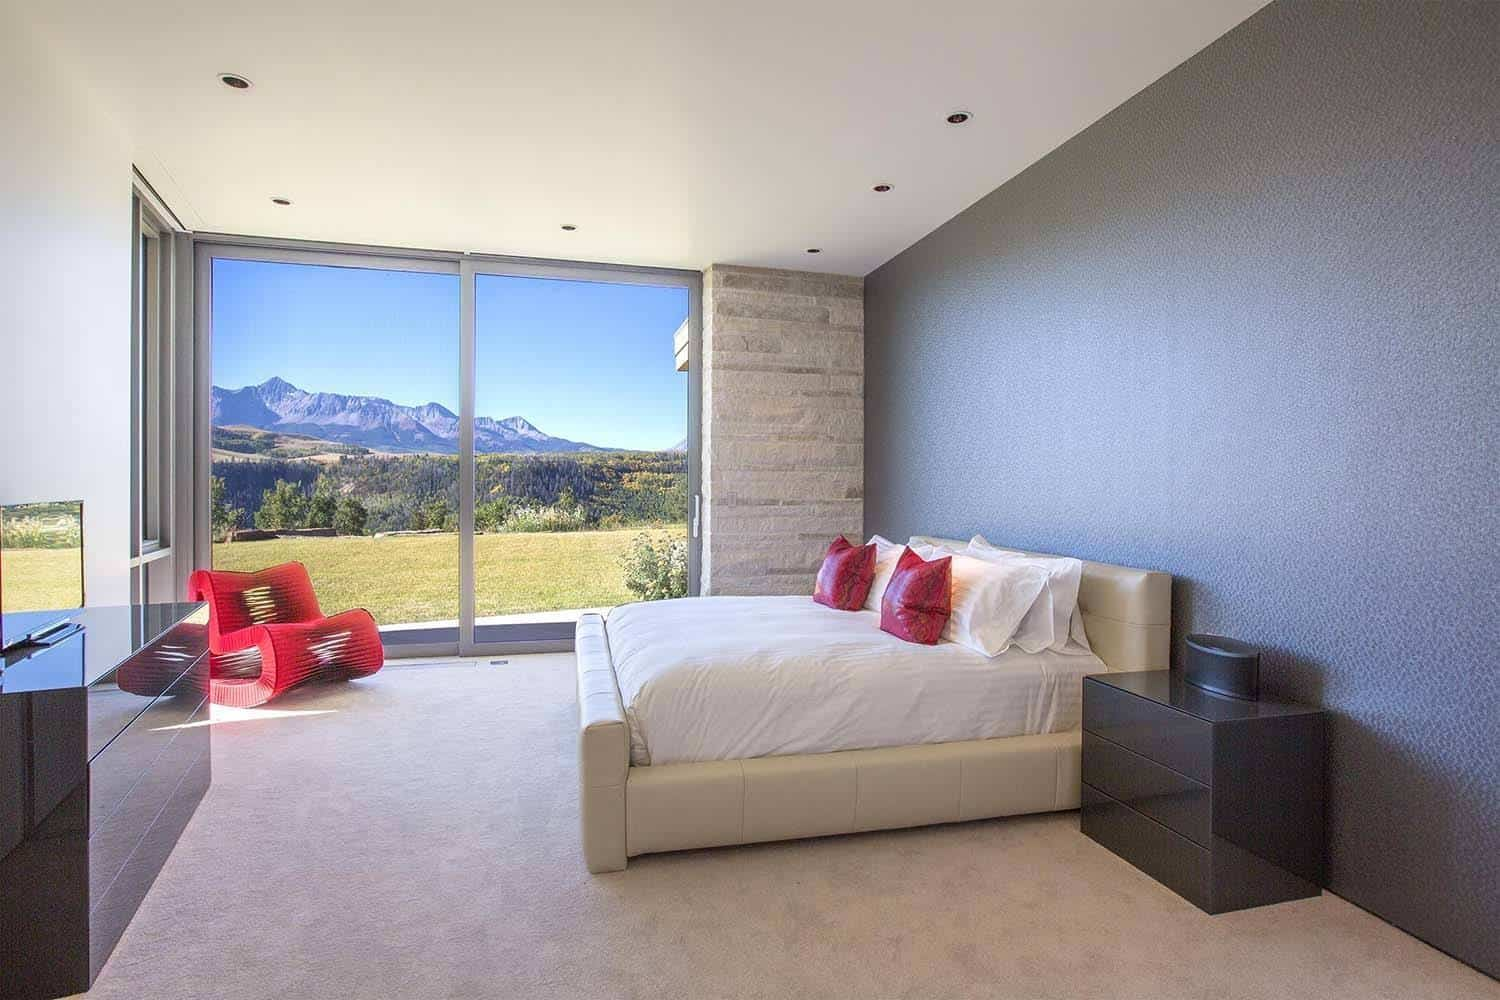 Modern-Residence-Colorado-Poss Architecture-53-1 Kindesign